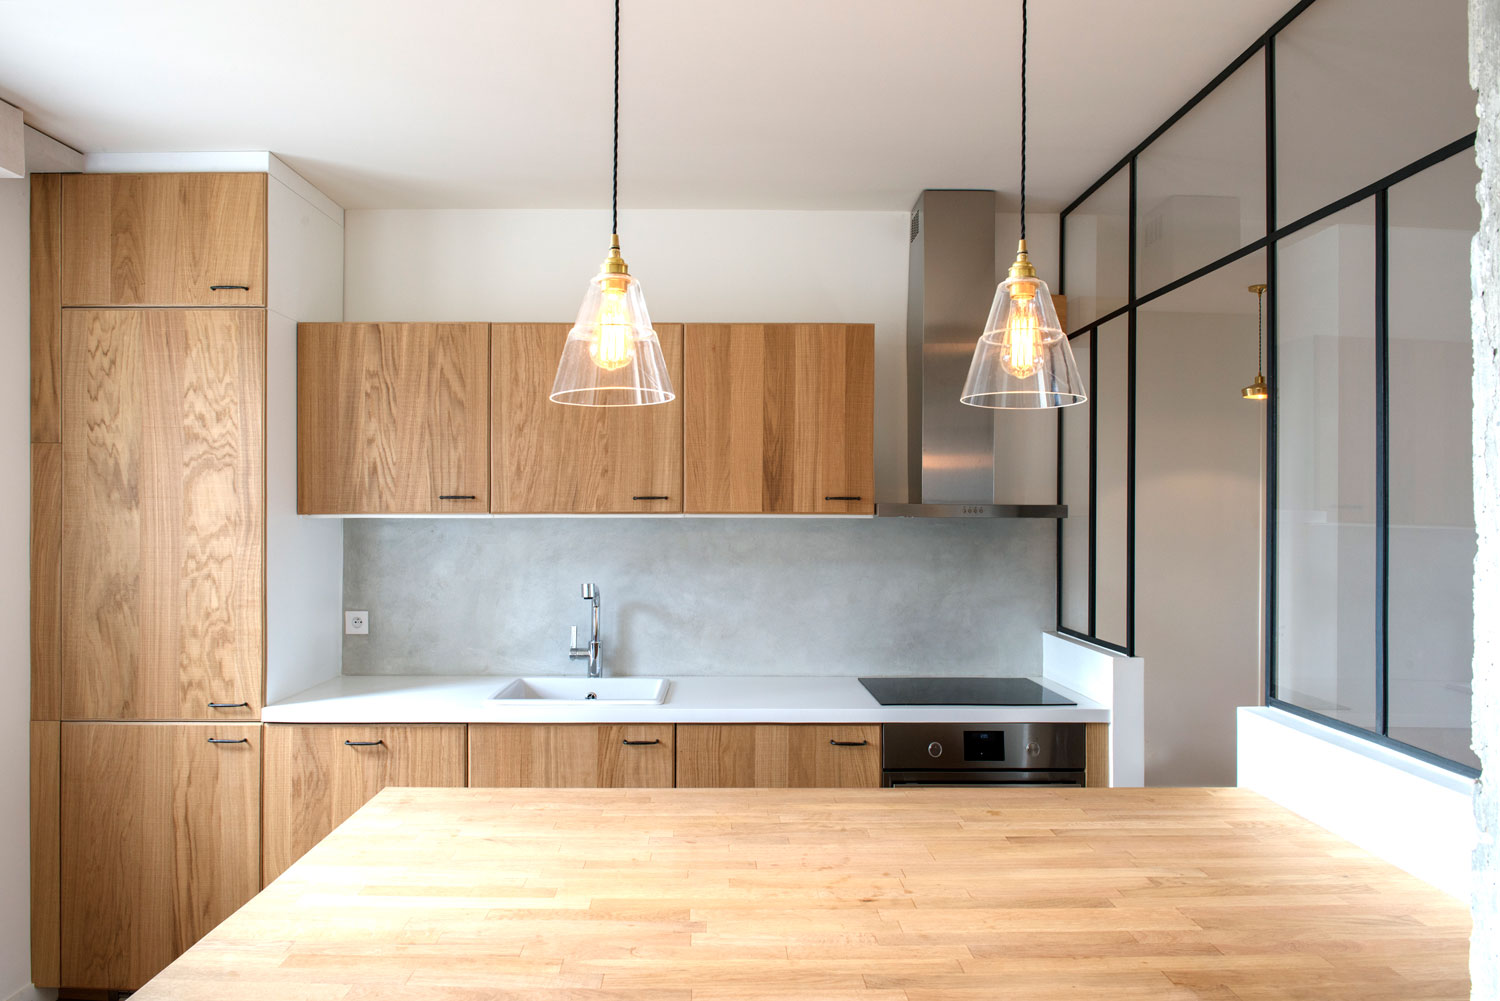 This charismatic kitchen space features our Lyx clear glass pendant lights